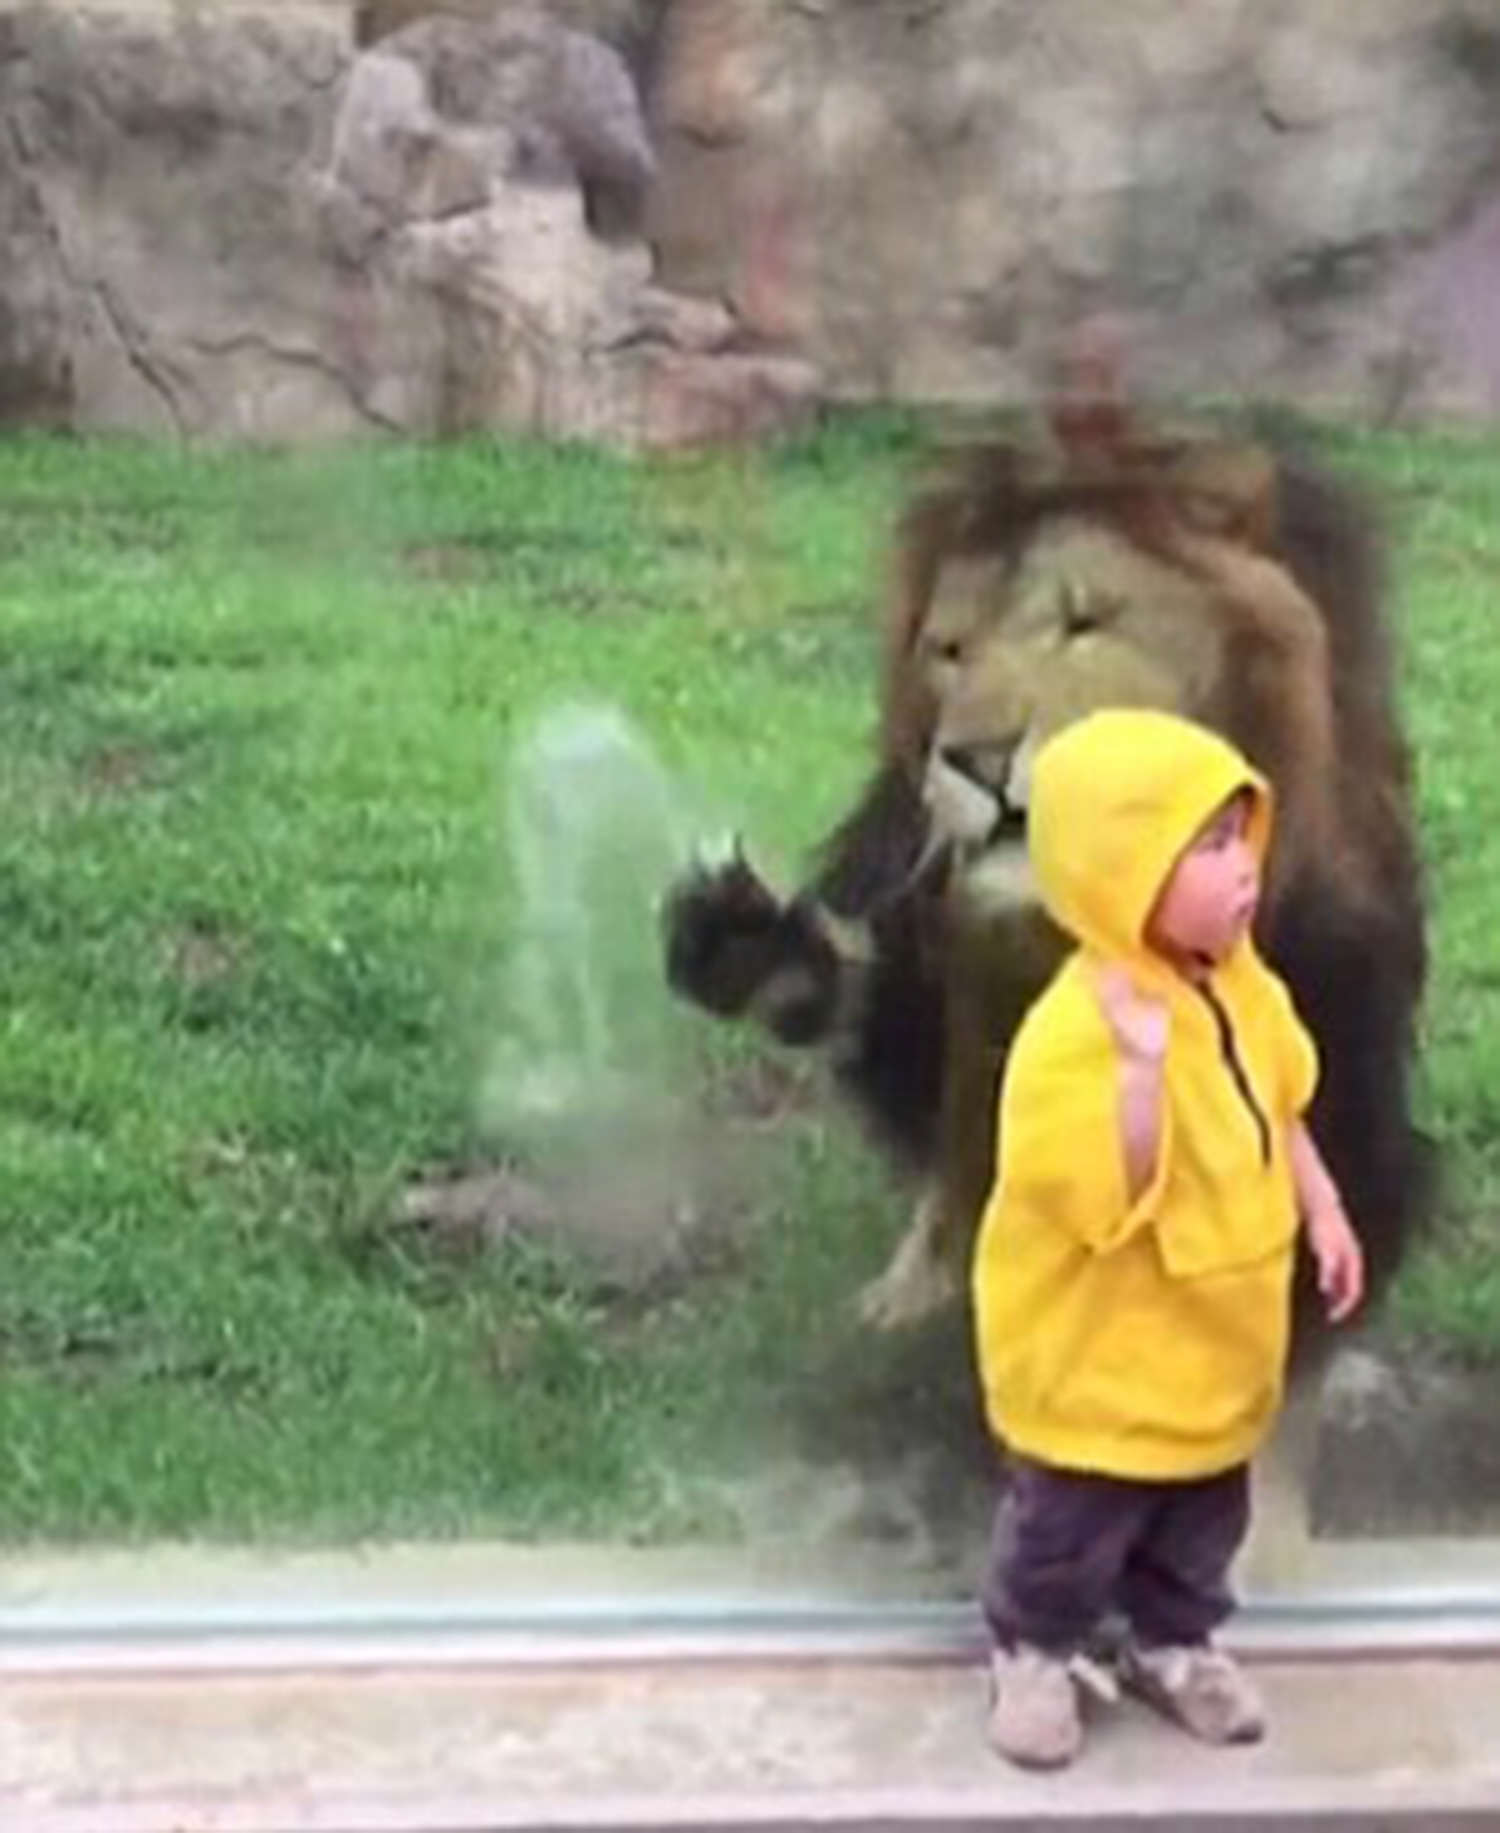 Terrifying Moment Lion Tries To Attack Toddler In Zoo 11lion2 2911063a